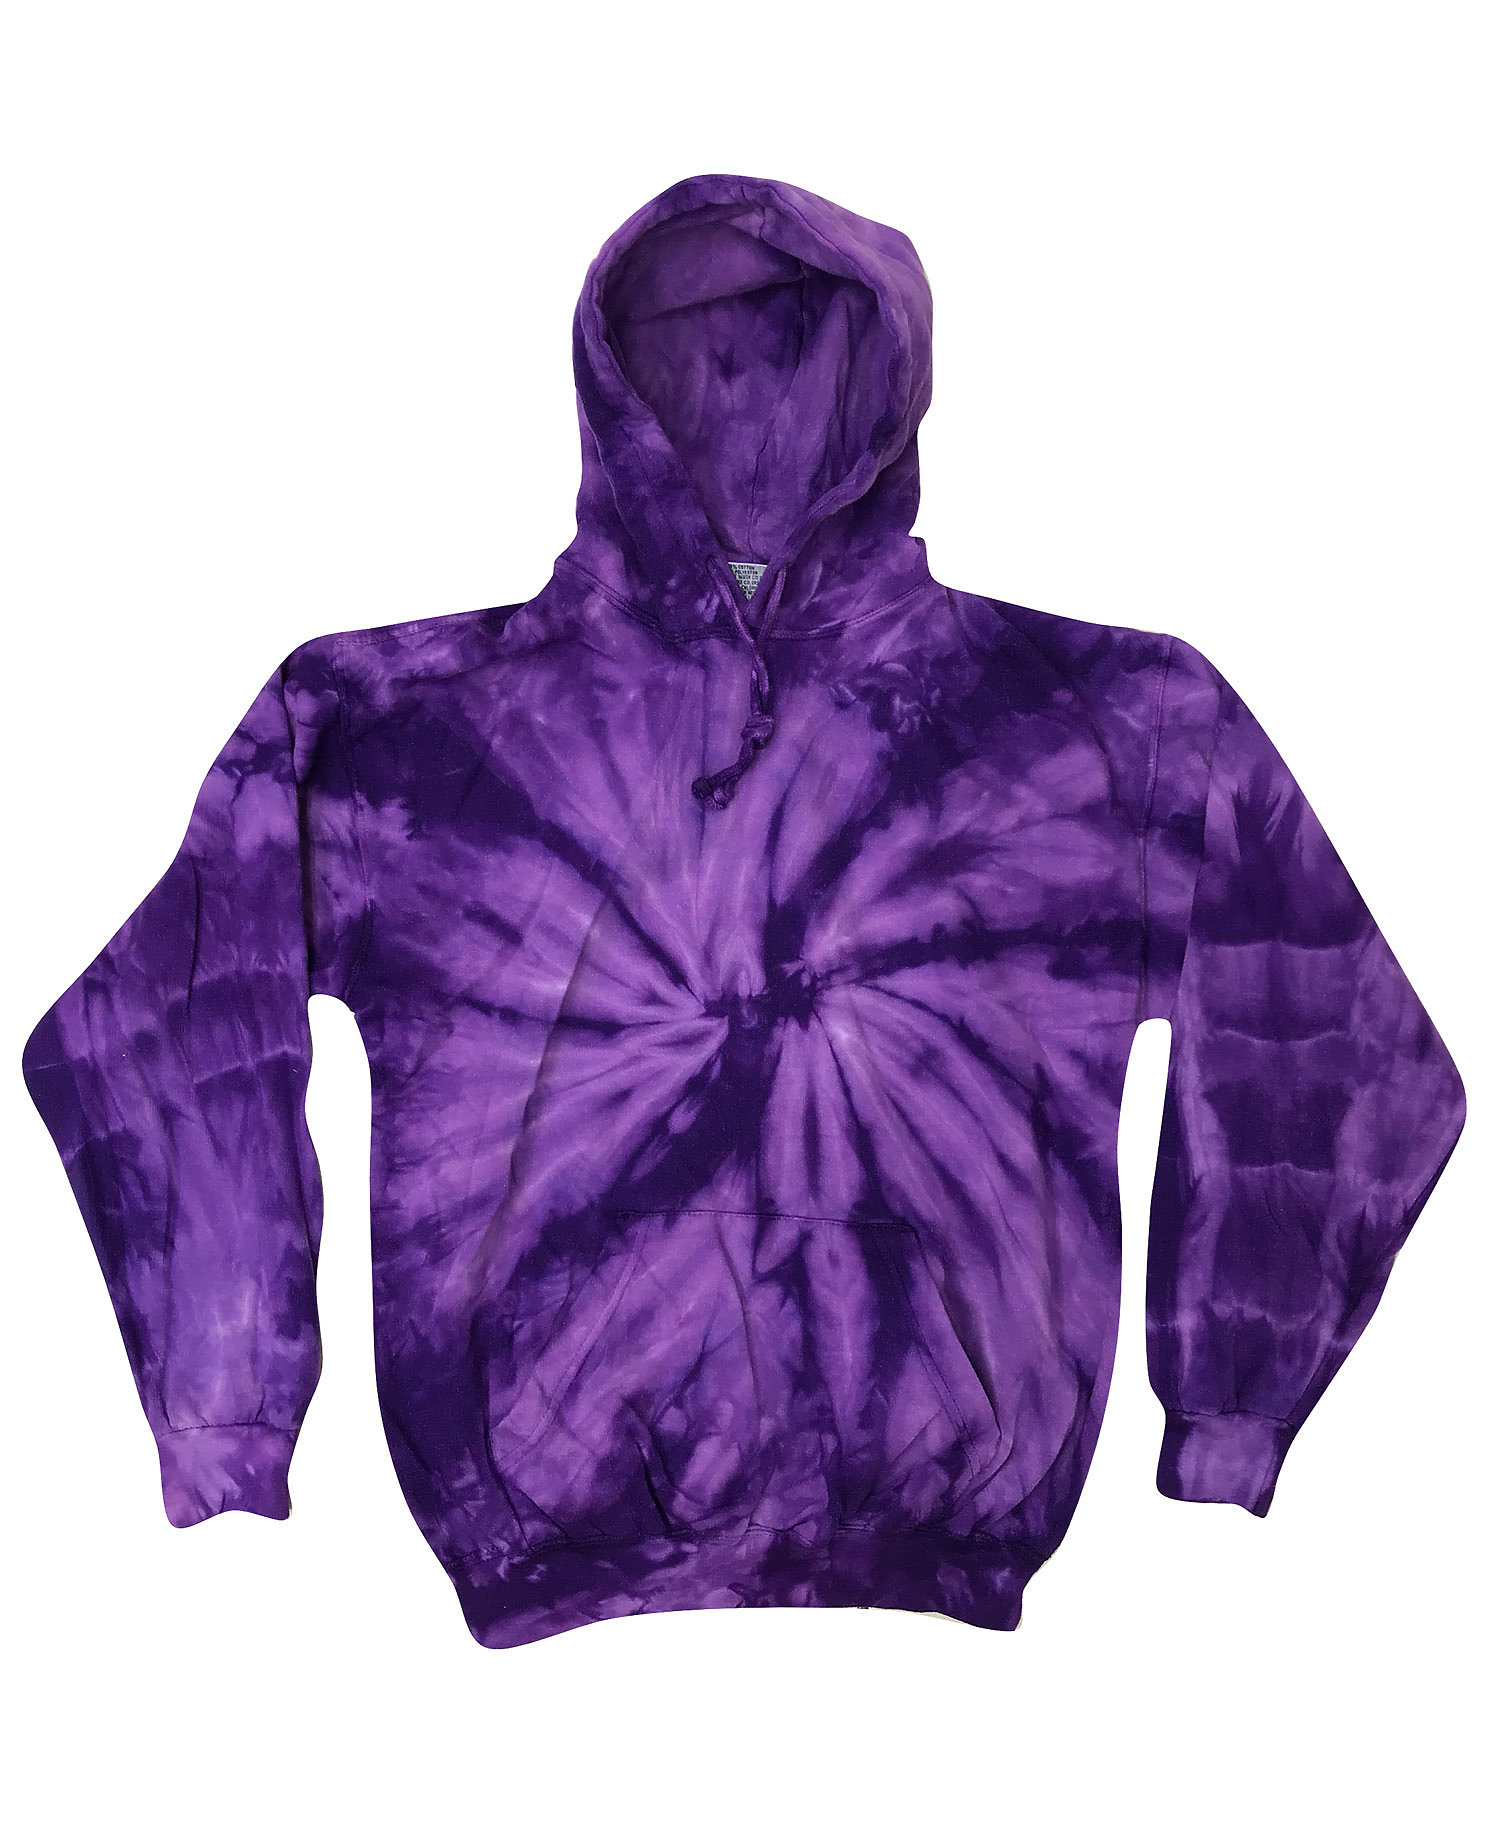 click to view SPIDER PURPLE